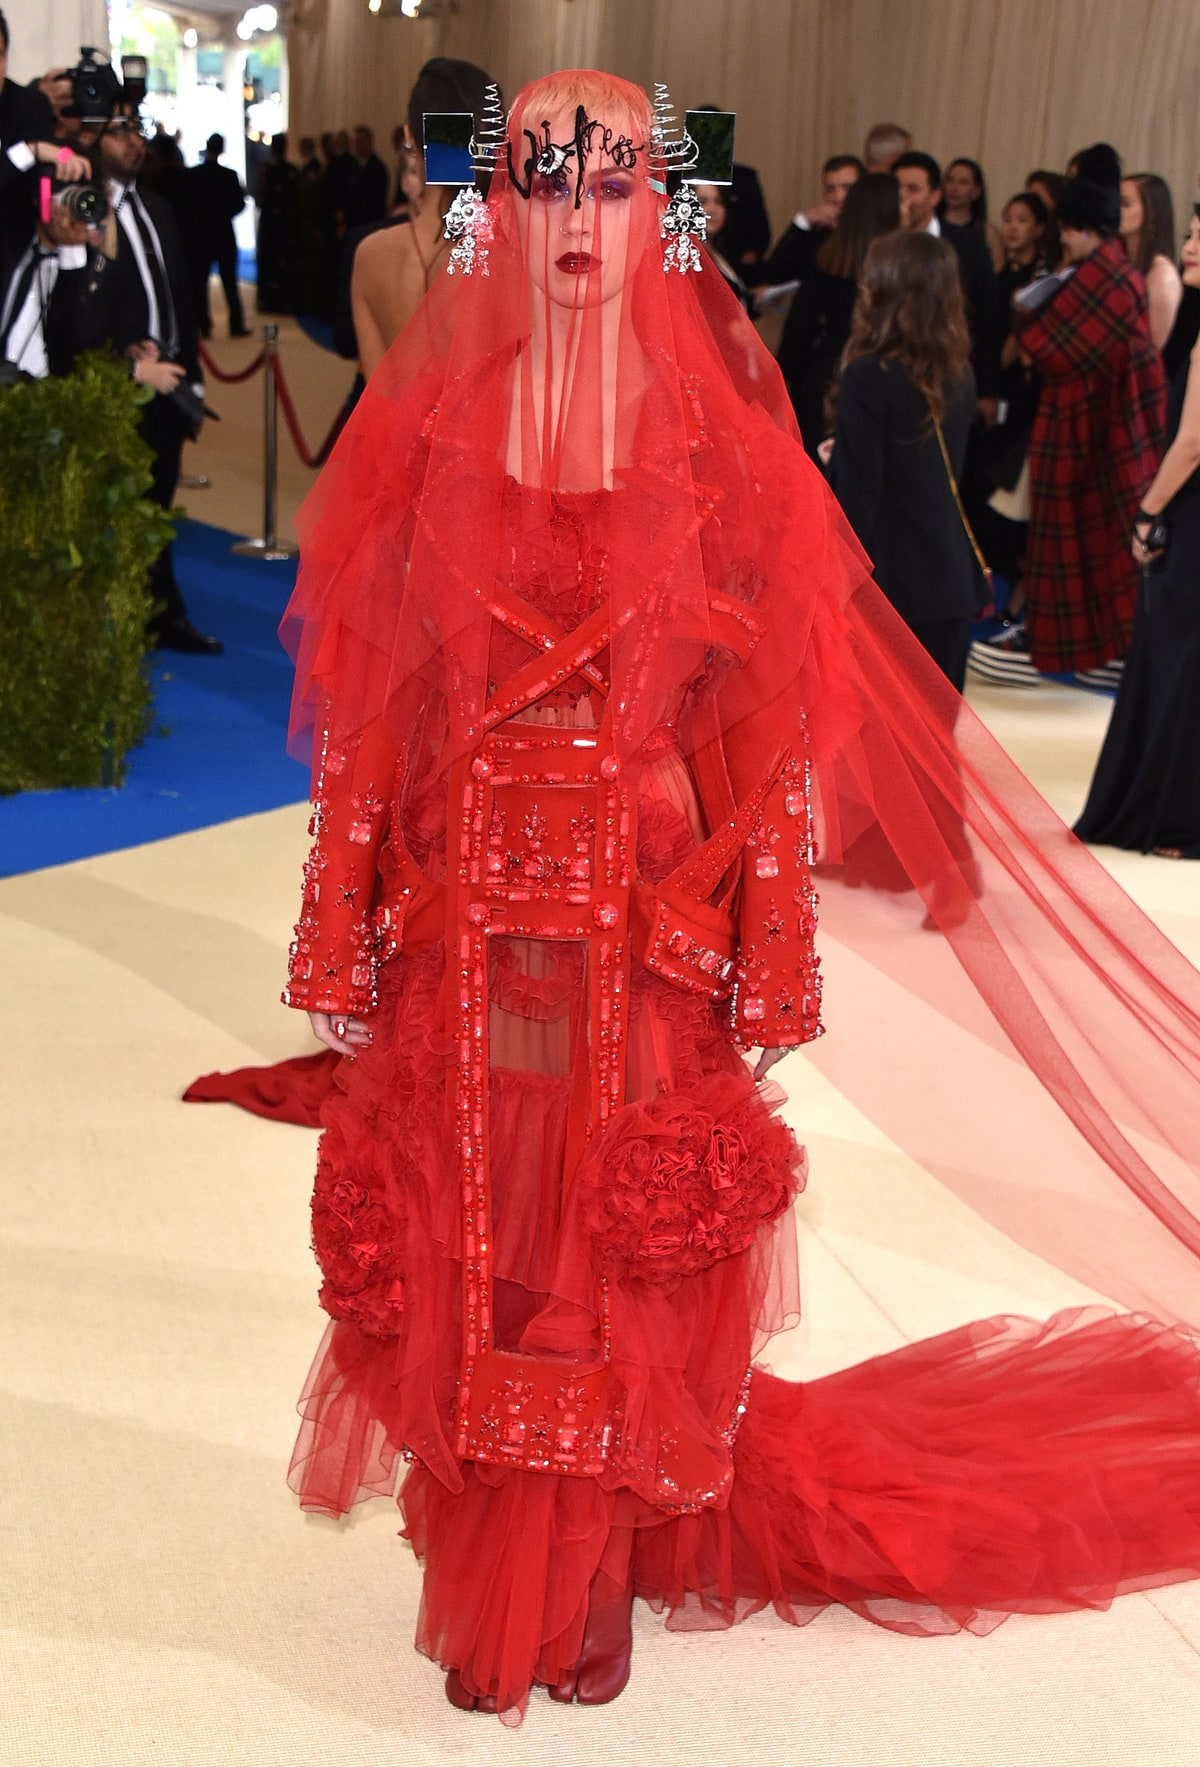 Katy Perry   in John Galliano.  I am not a label snob who will praise anything just because it's designer. This is straight up confusing as it is ugly. There is nothing flattering about this over embellished tulle, column, mesh gown. The headpiece could have been tossed too. Try again girl.